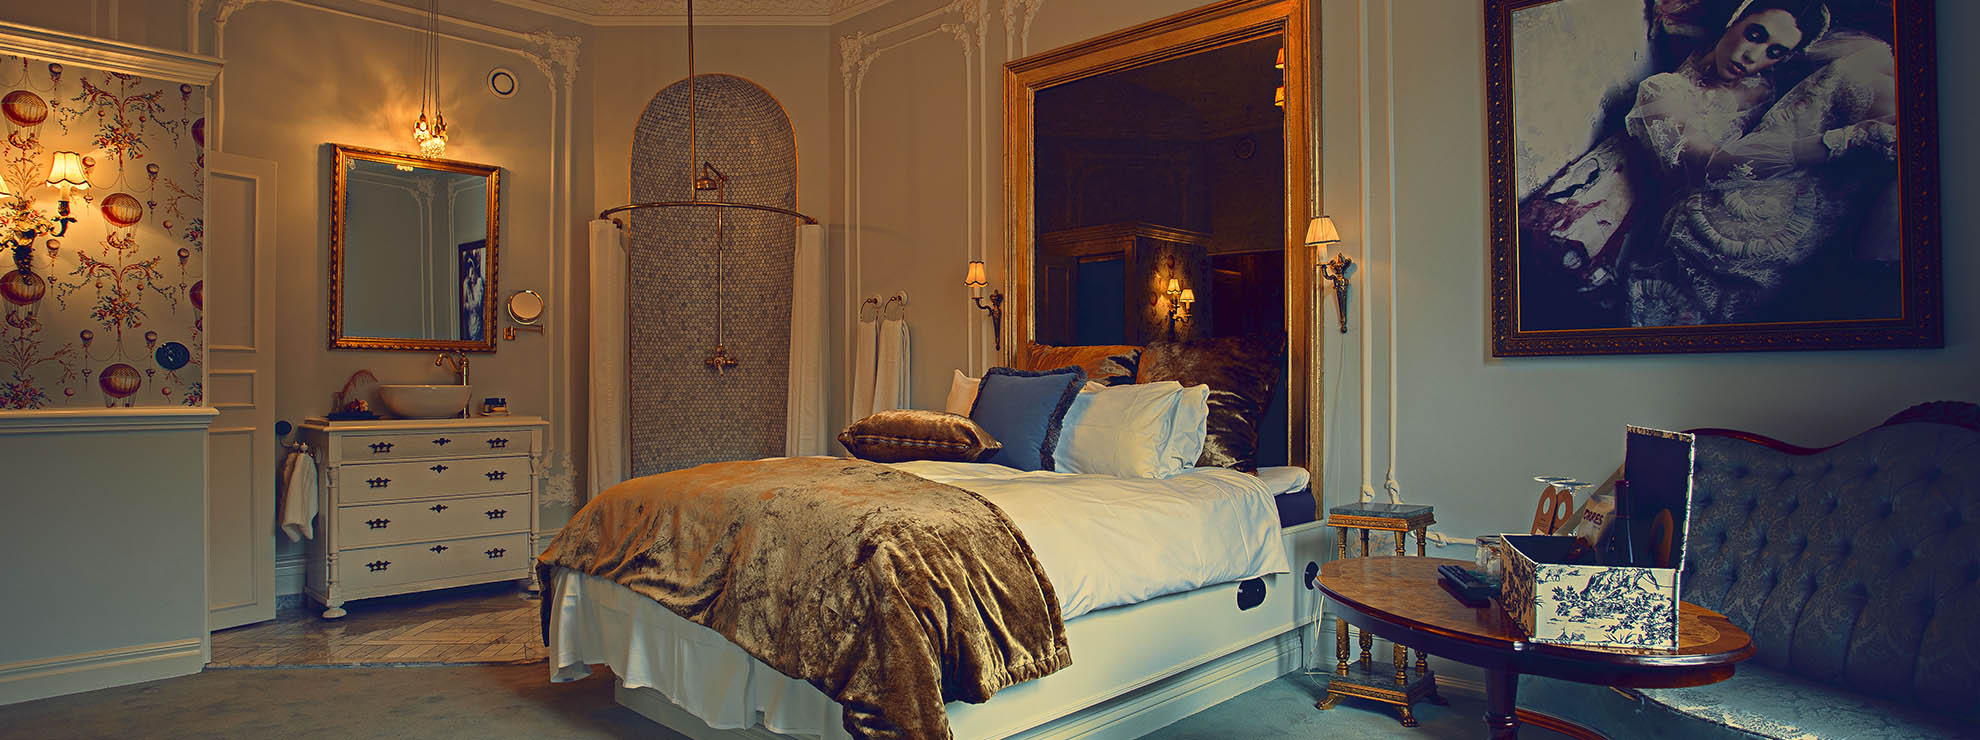 pigalle-hotel